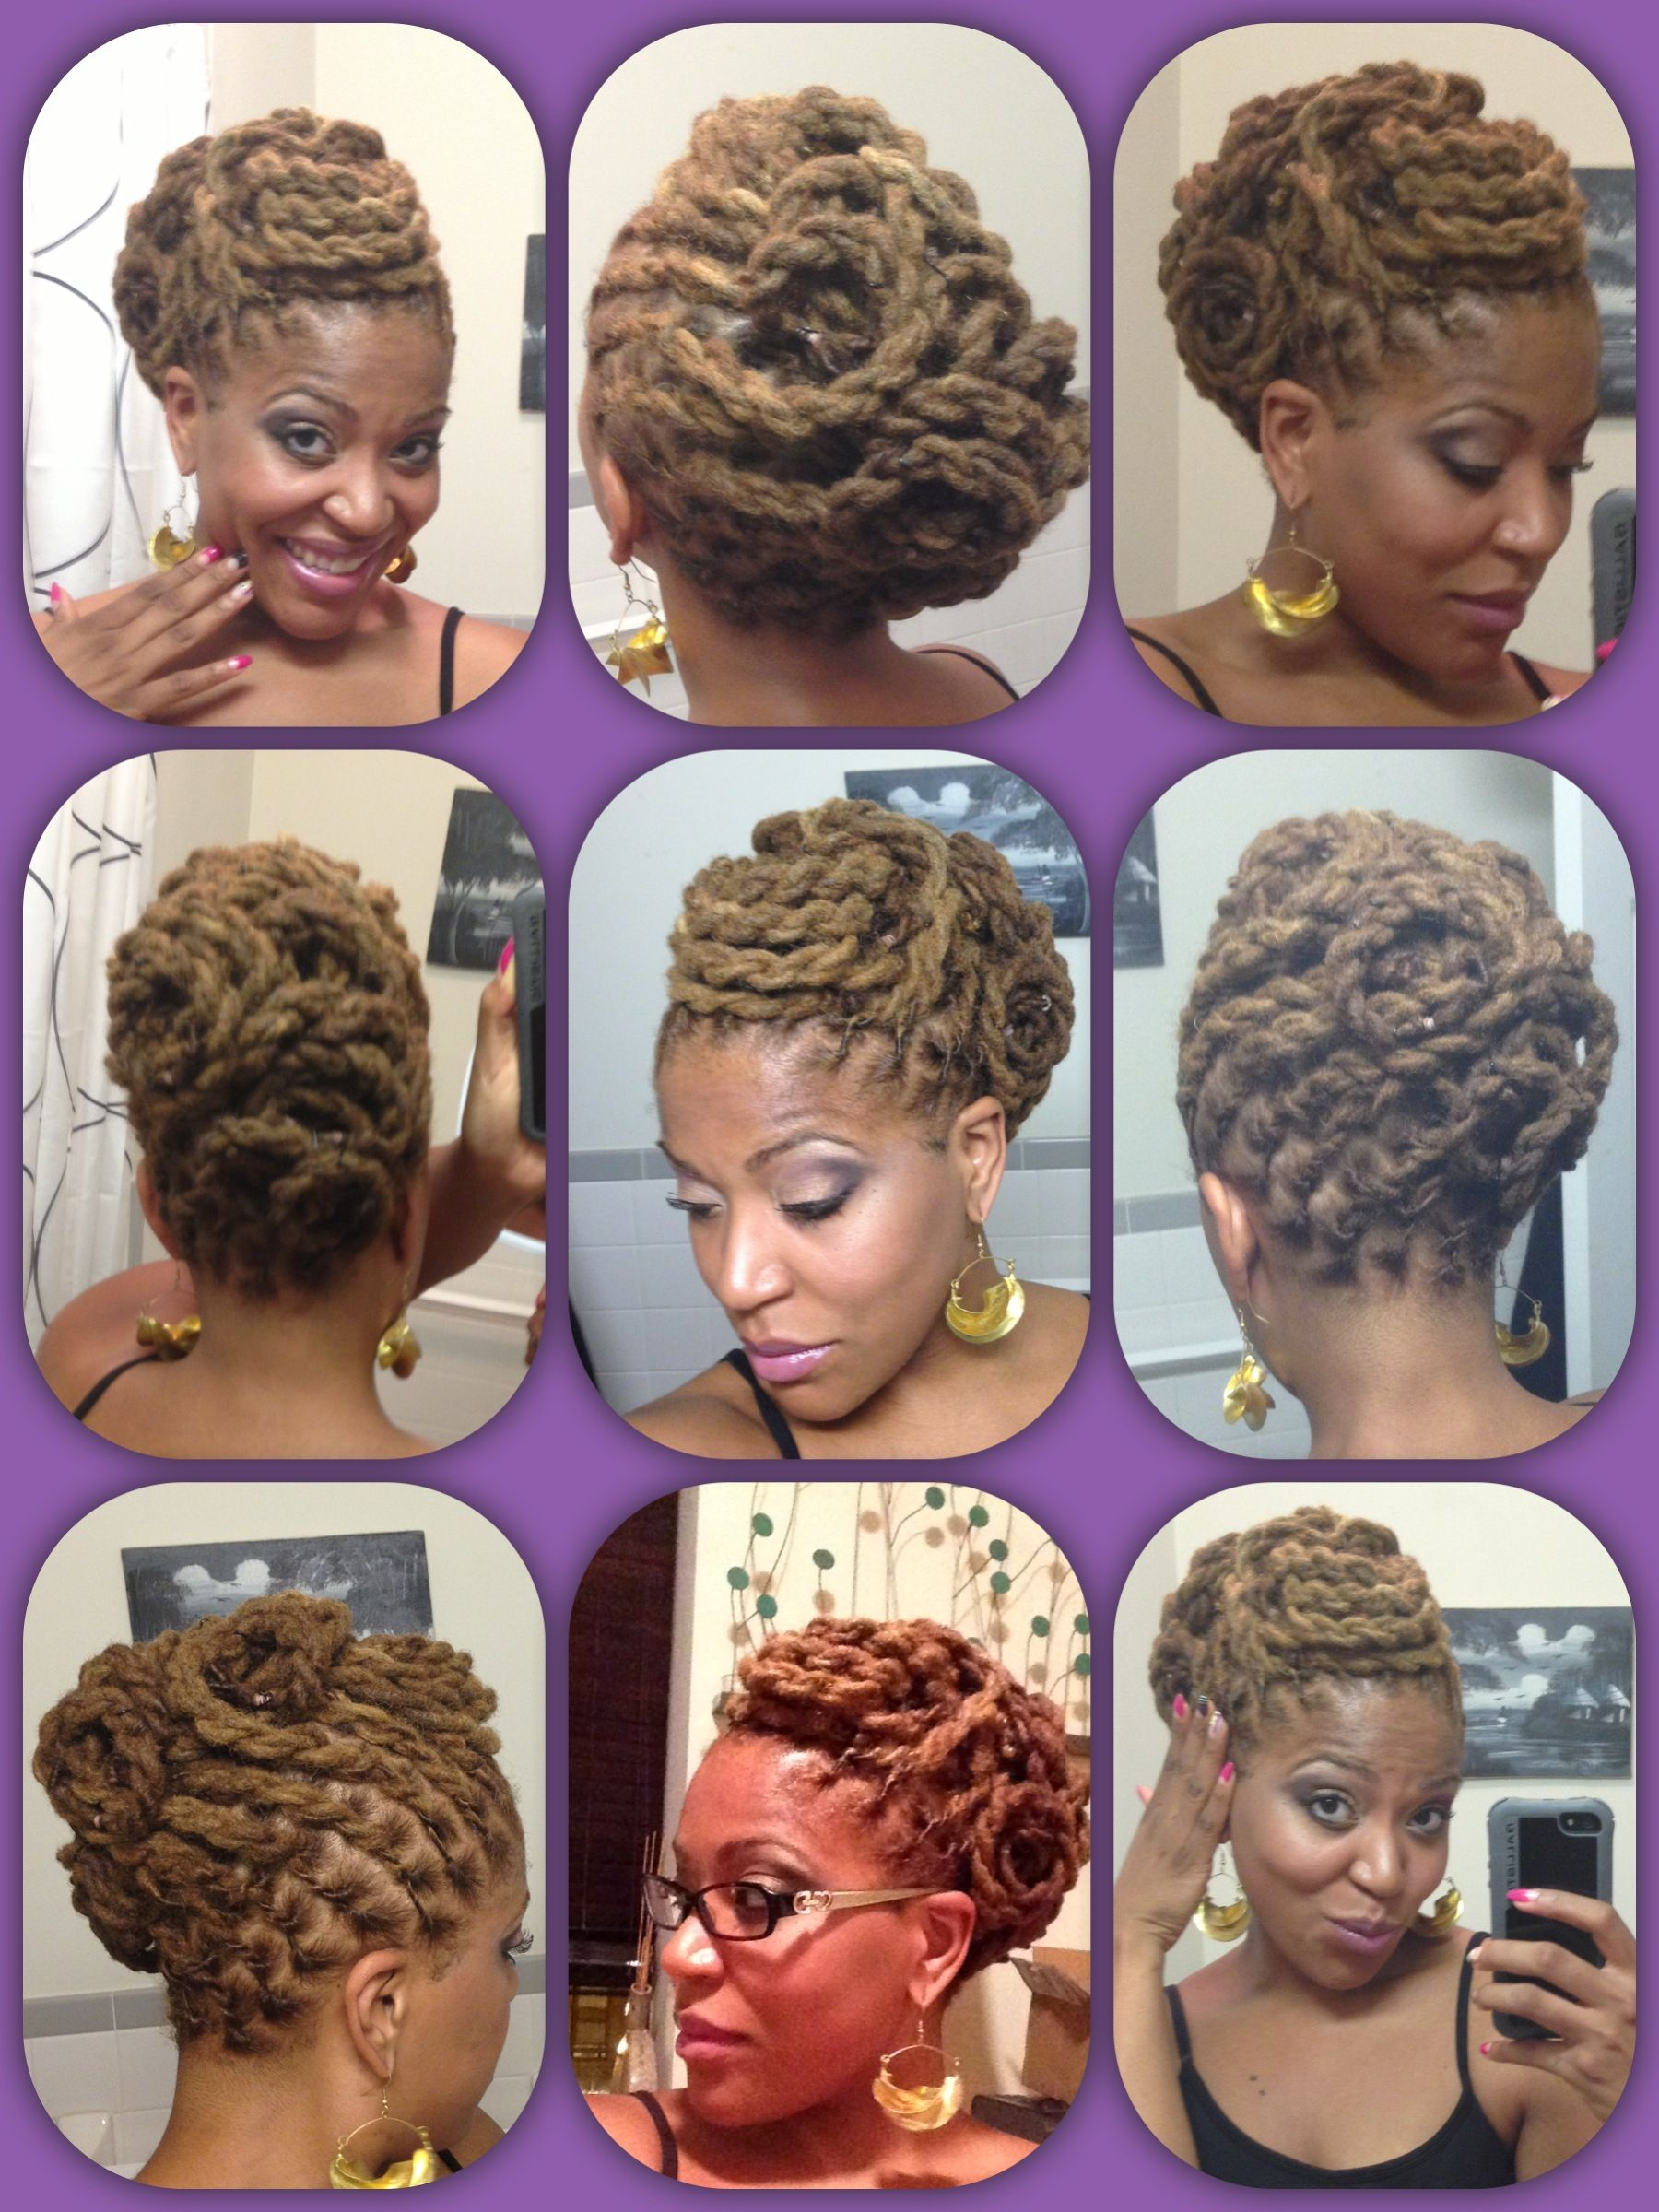 Pin By Joy Marilie On My Loc Styles And Experiments Natural Hair Styles Locs Hairstyles Dreadlock Hairstyles